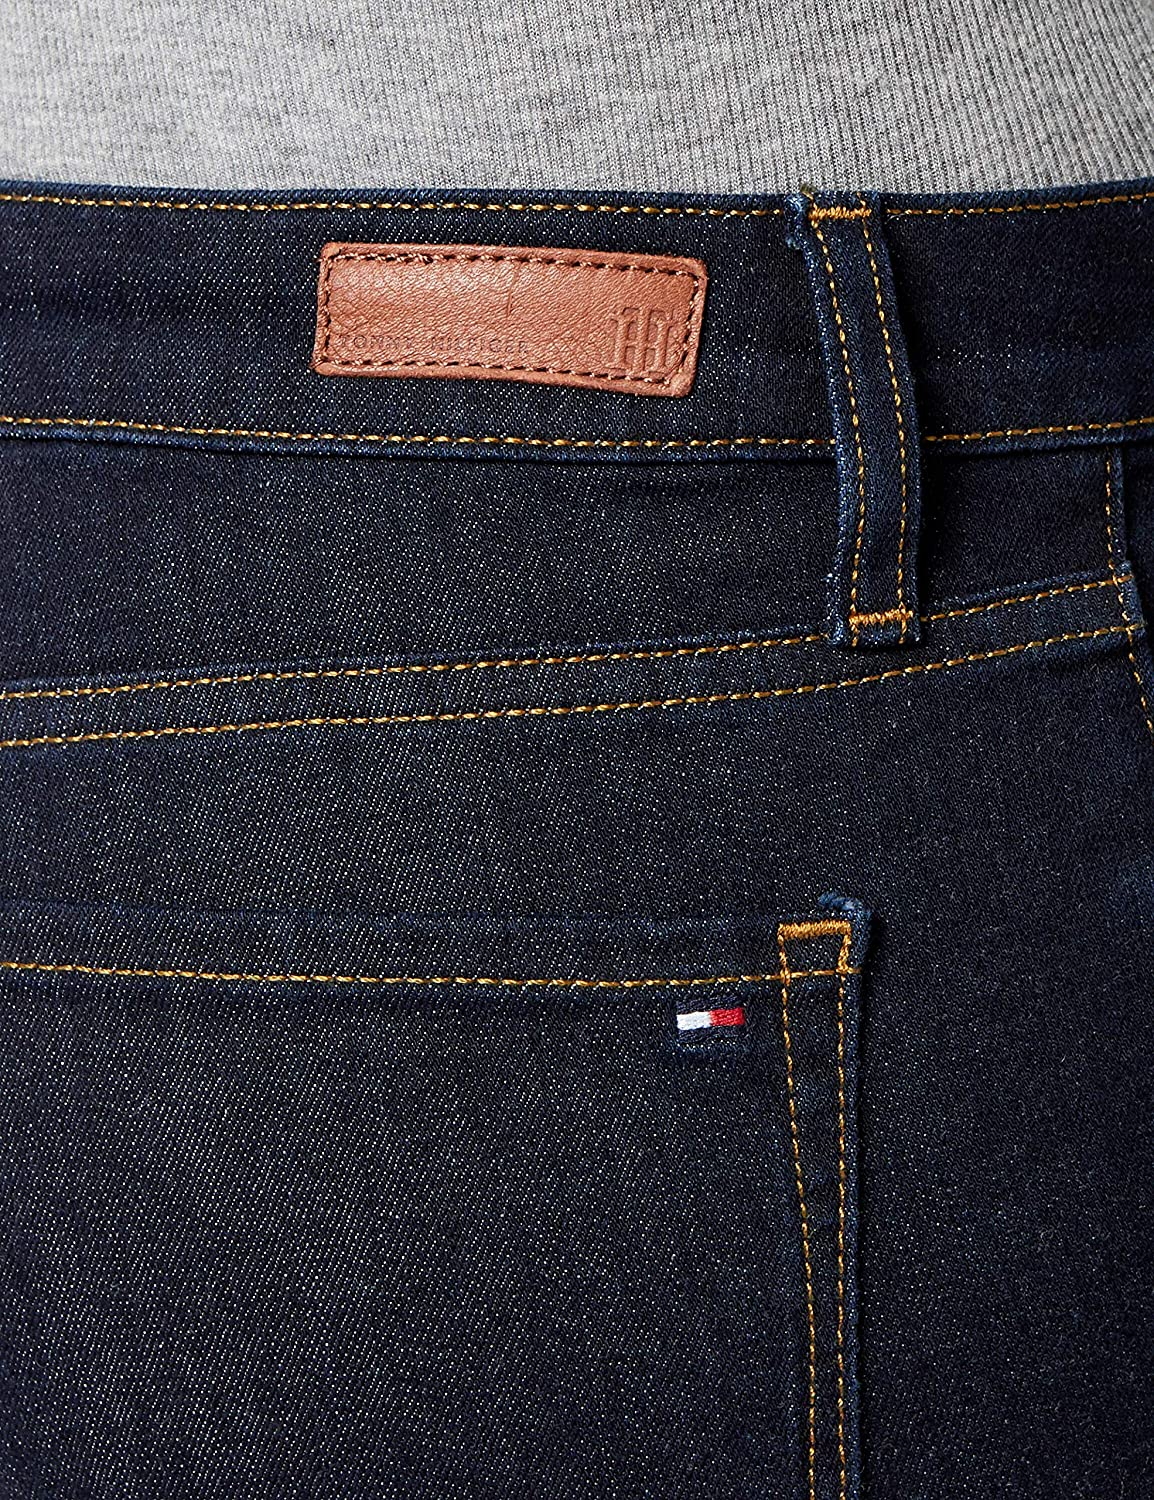 482a97fc Tommy Hilfiger Women's Rome Slim Jeans: Amazon.co.uk: Clothing